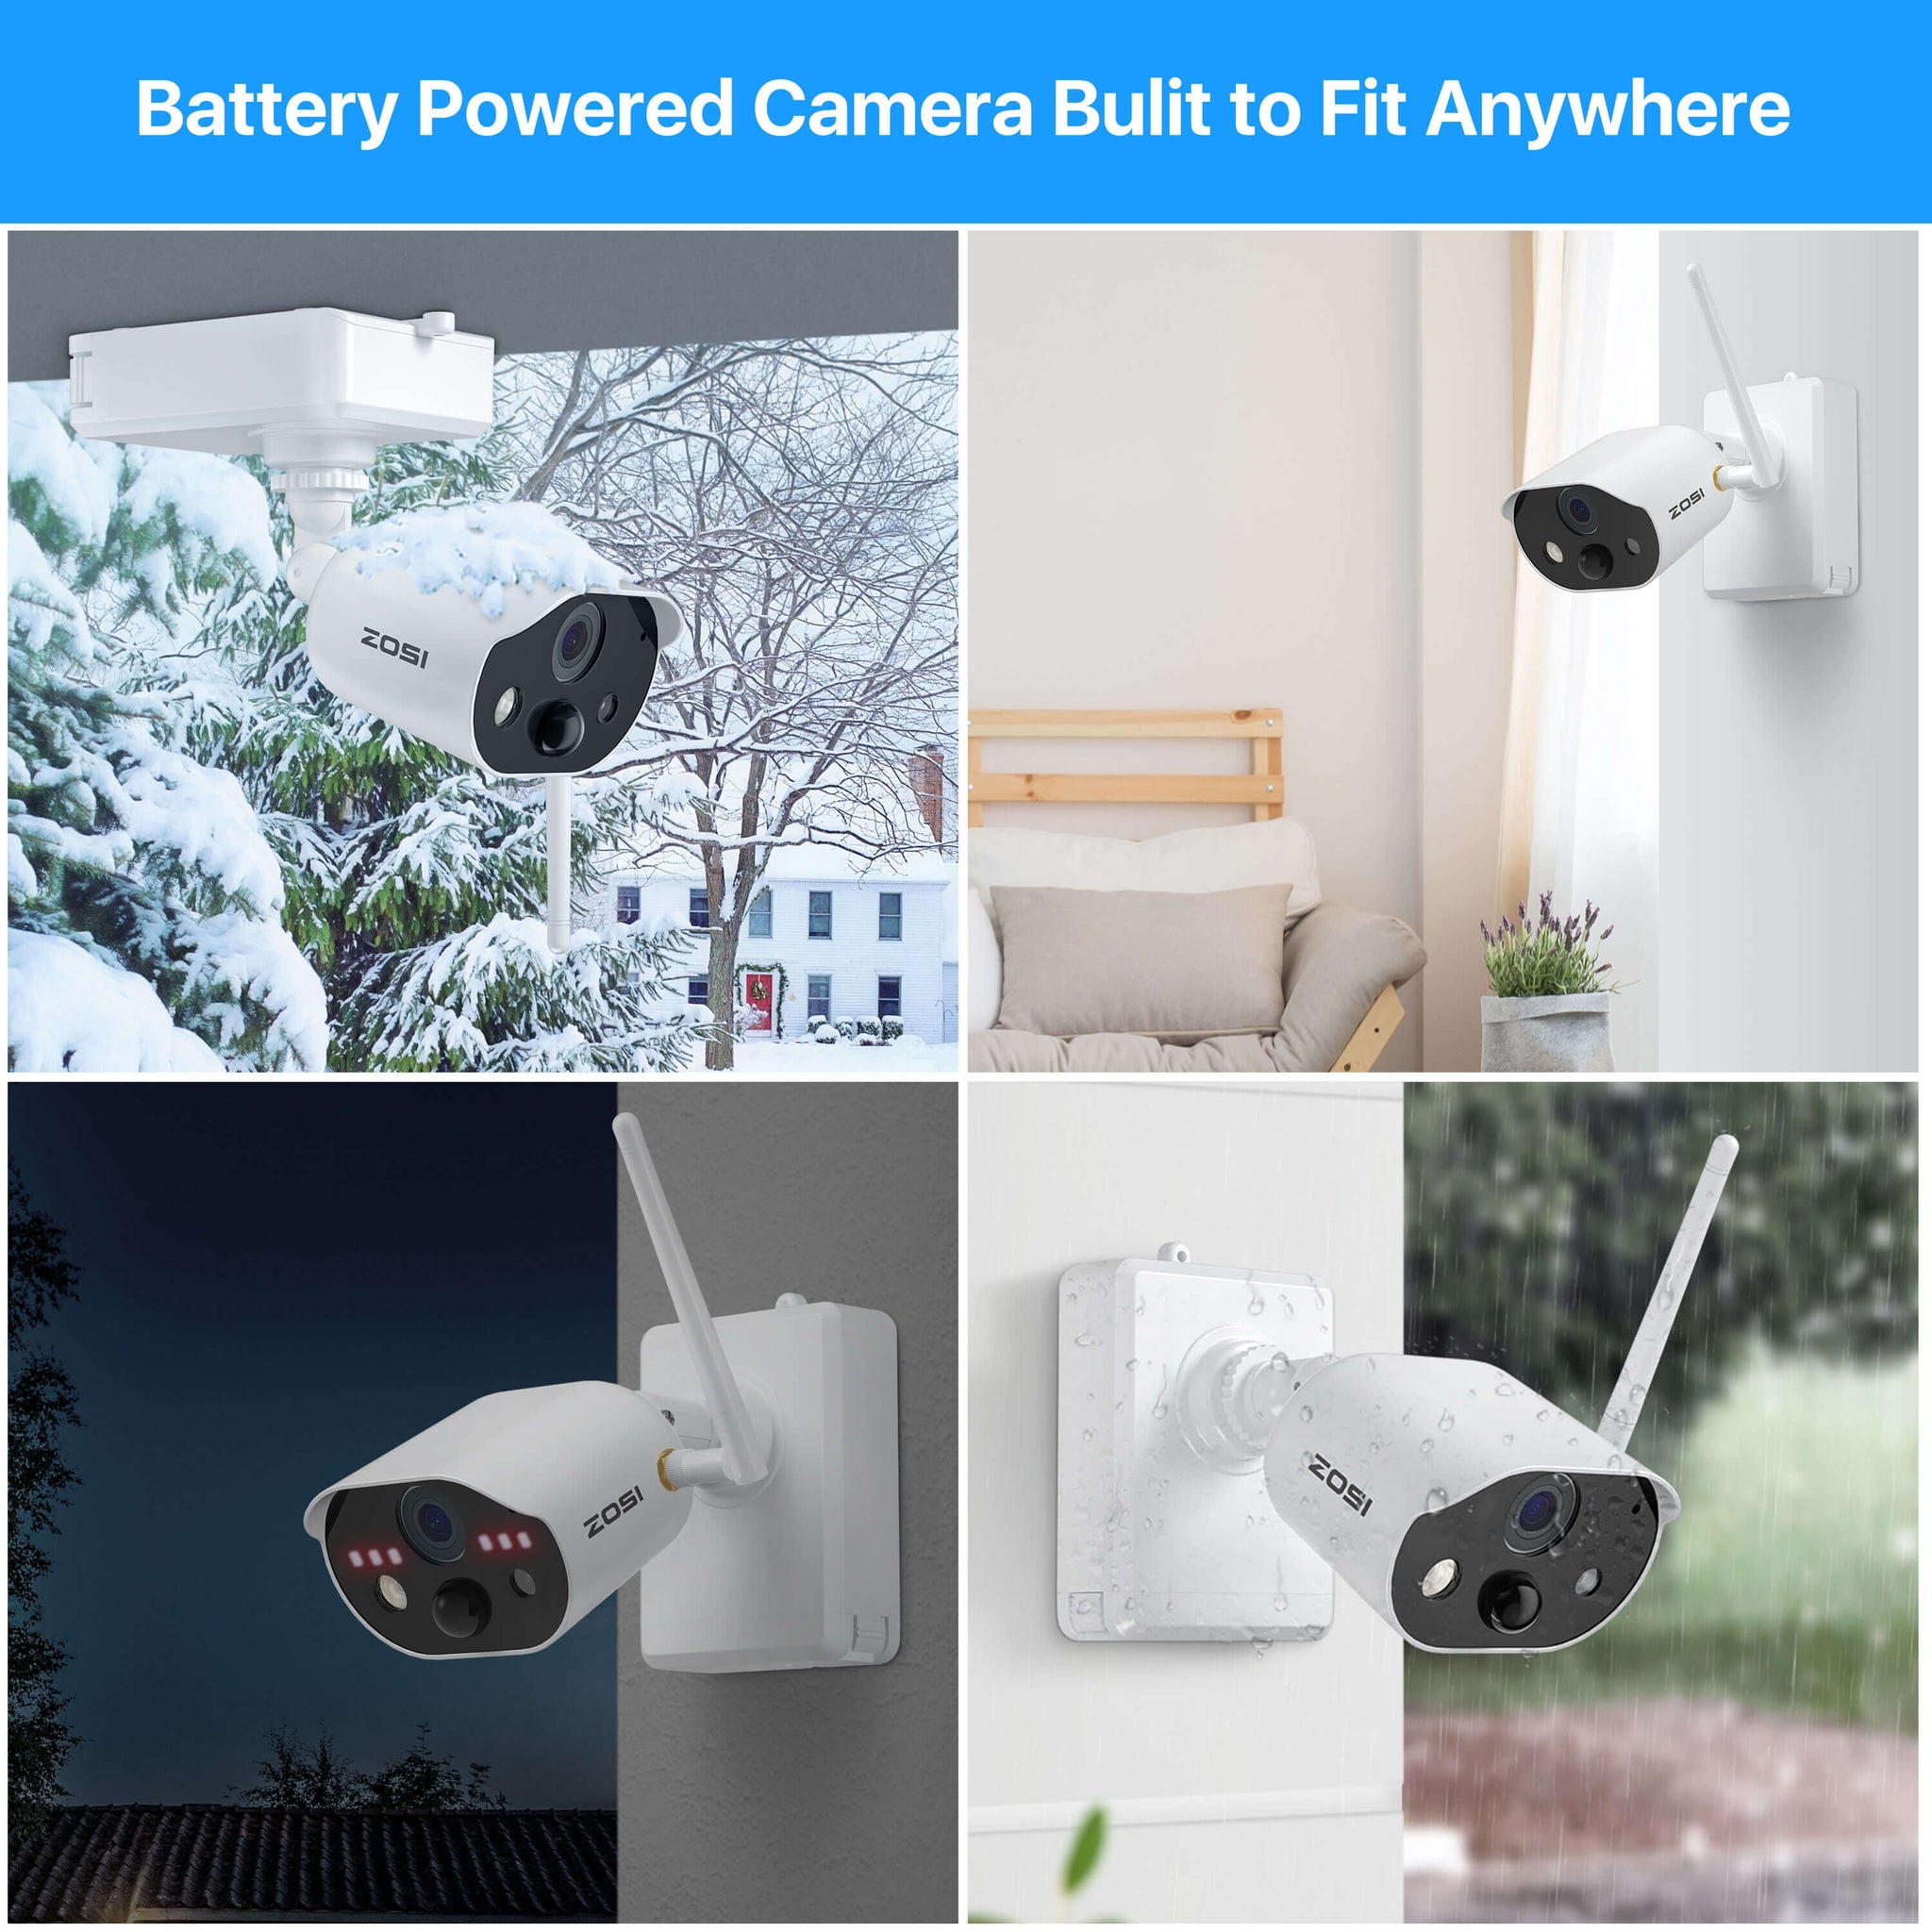 C301 100% Wireless Security Camera System, 4 Channel NVR, Motion-Triggered Light & Siren Alarm, Rechargeable Battery Powered Camera, Two Way Audio